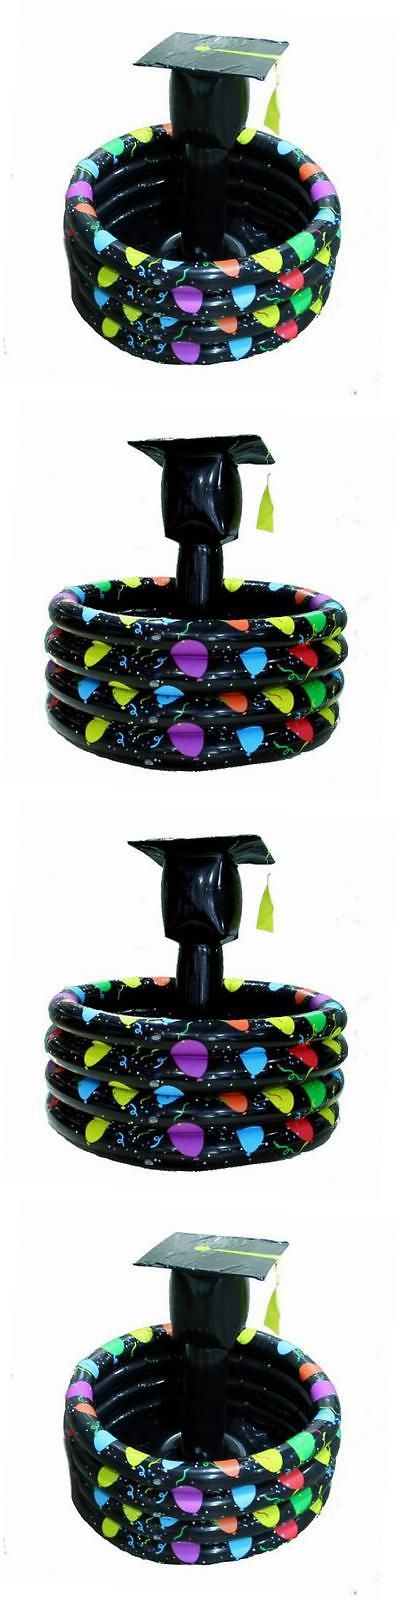 Inflatables 177759: Graduation Hat Inflatable Cooler Party Supplies By -> BUY IT NOW ONLY: $30.58 on eBay!